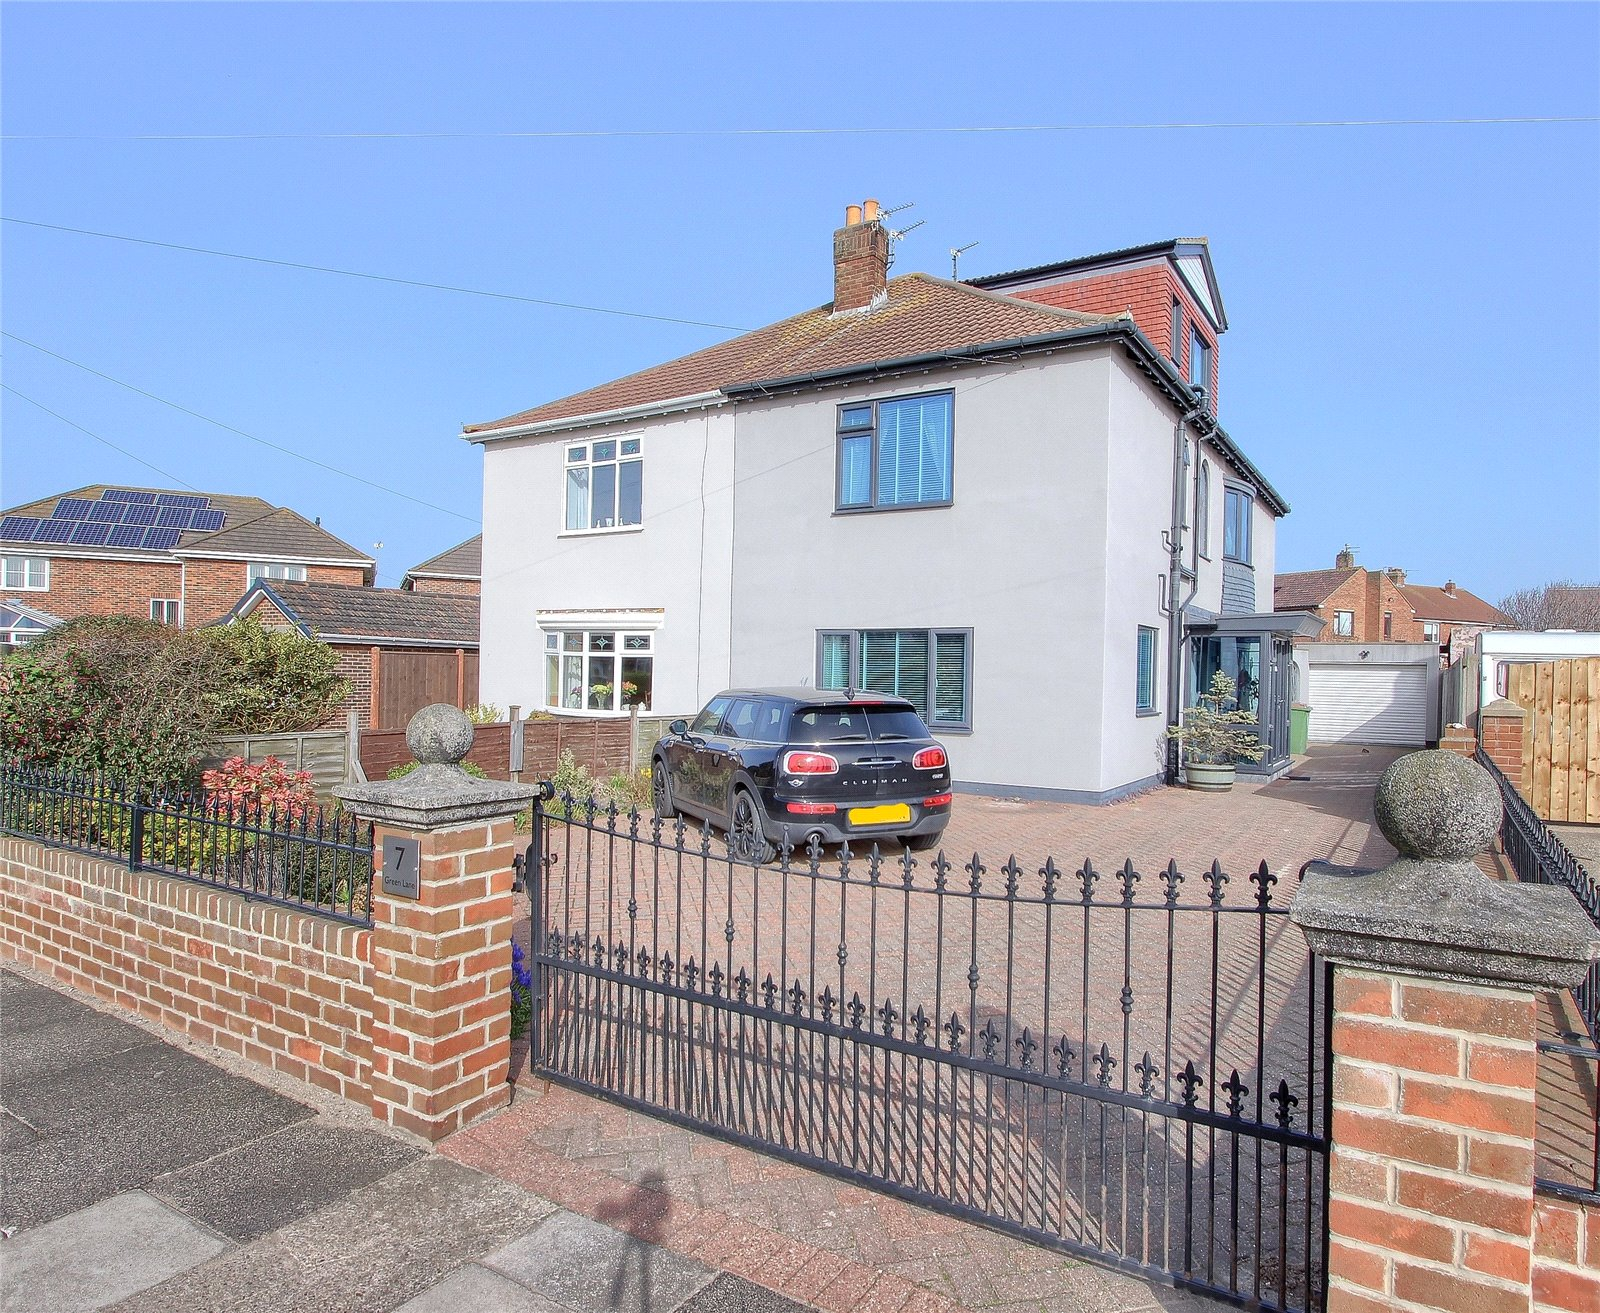 4 bed house for sale in Green Lane, Redcar - Property Image 1